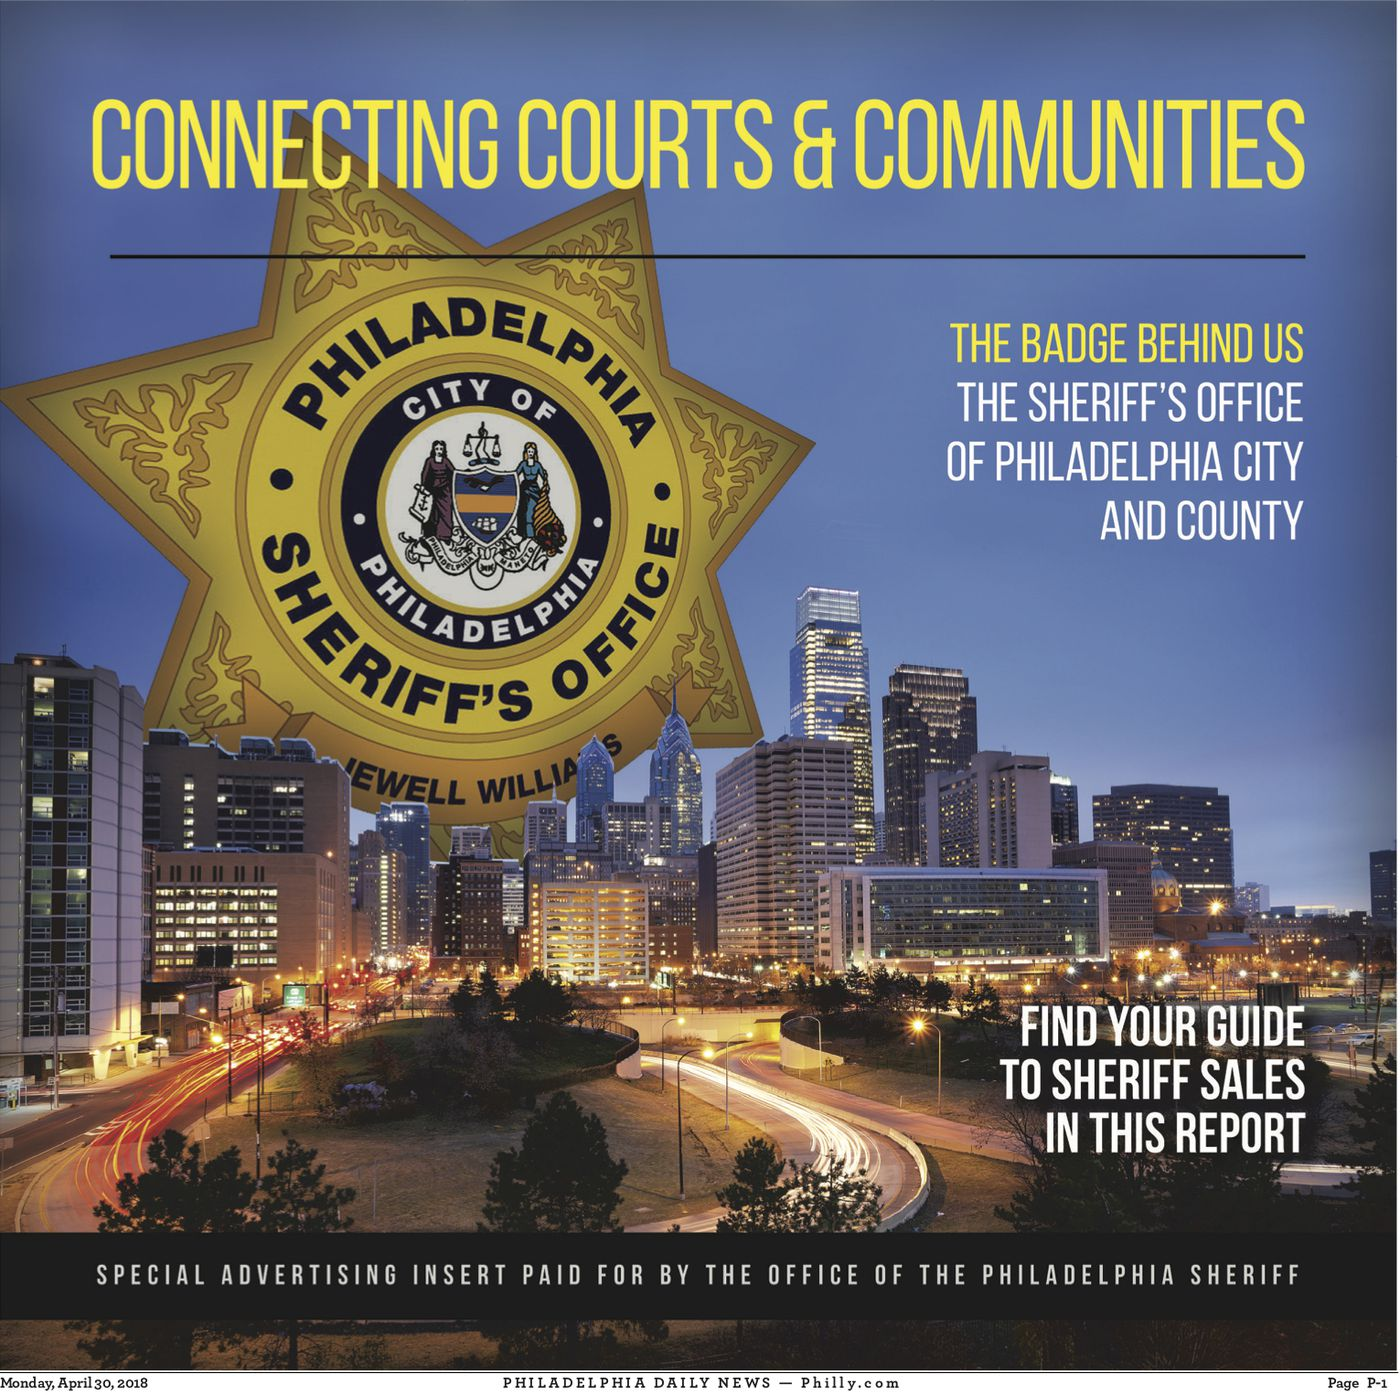 Covering the Philadelphia Sheriff's Office: A word from the